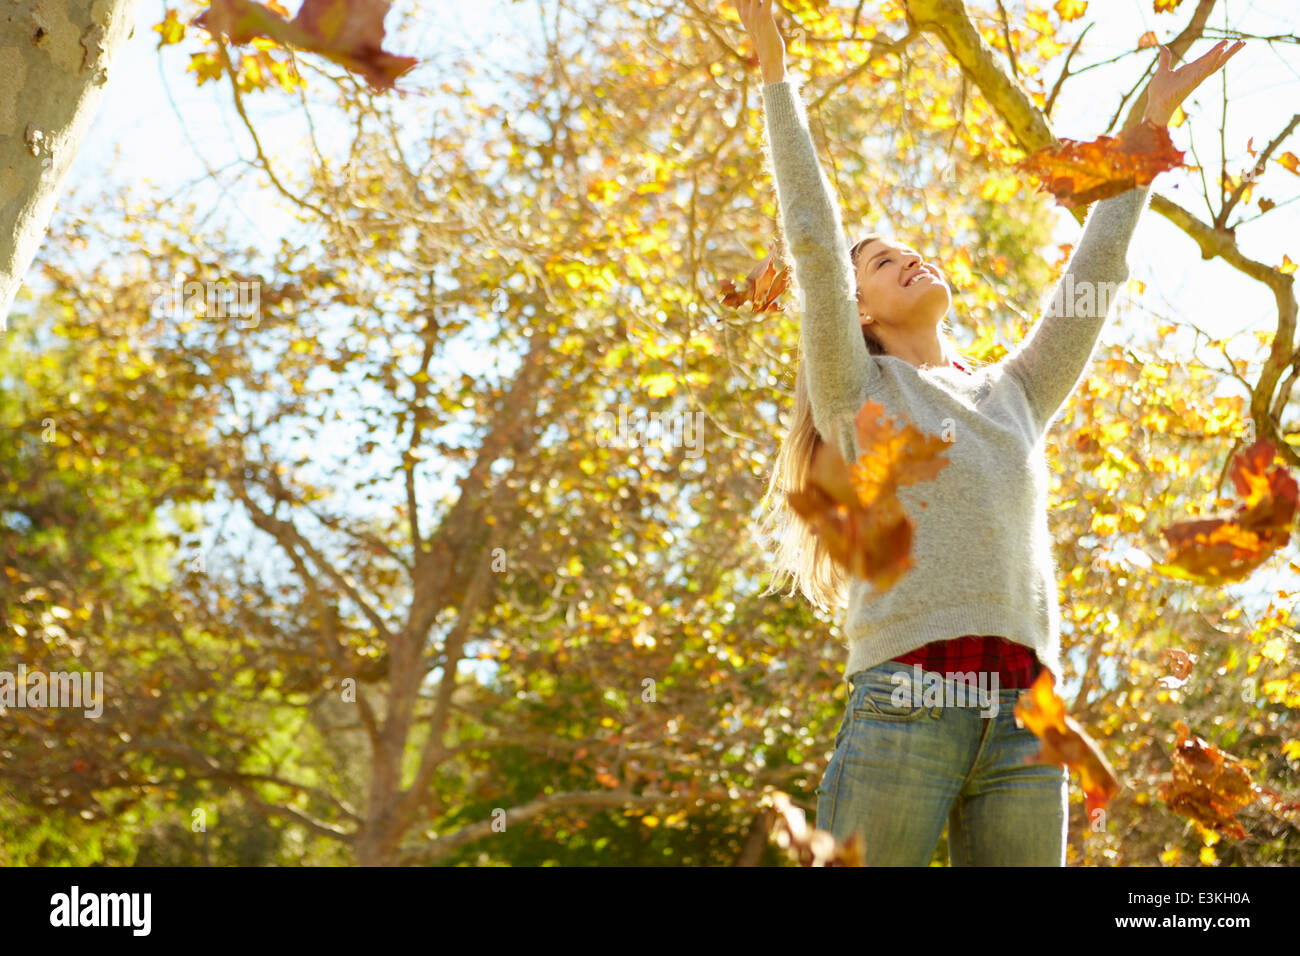 Woman Throwing Autumn Leaves In The Air - Stock Image